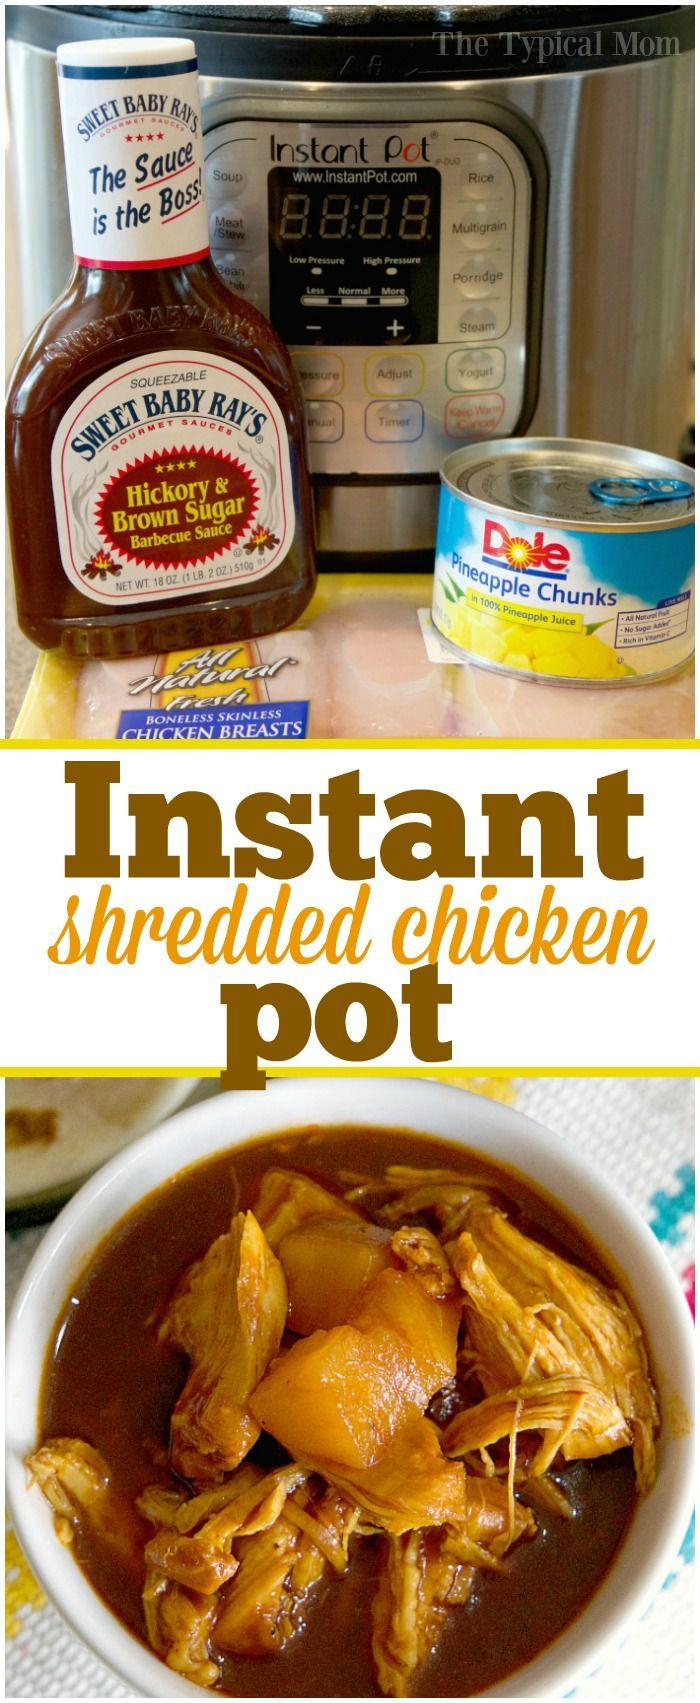 This Instant Pot Shredded Chicken With Barbecue Is The Bomb It S So Good And You Only Need 3